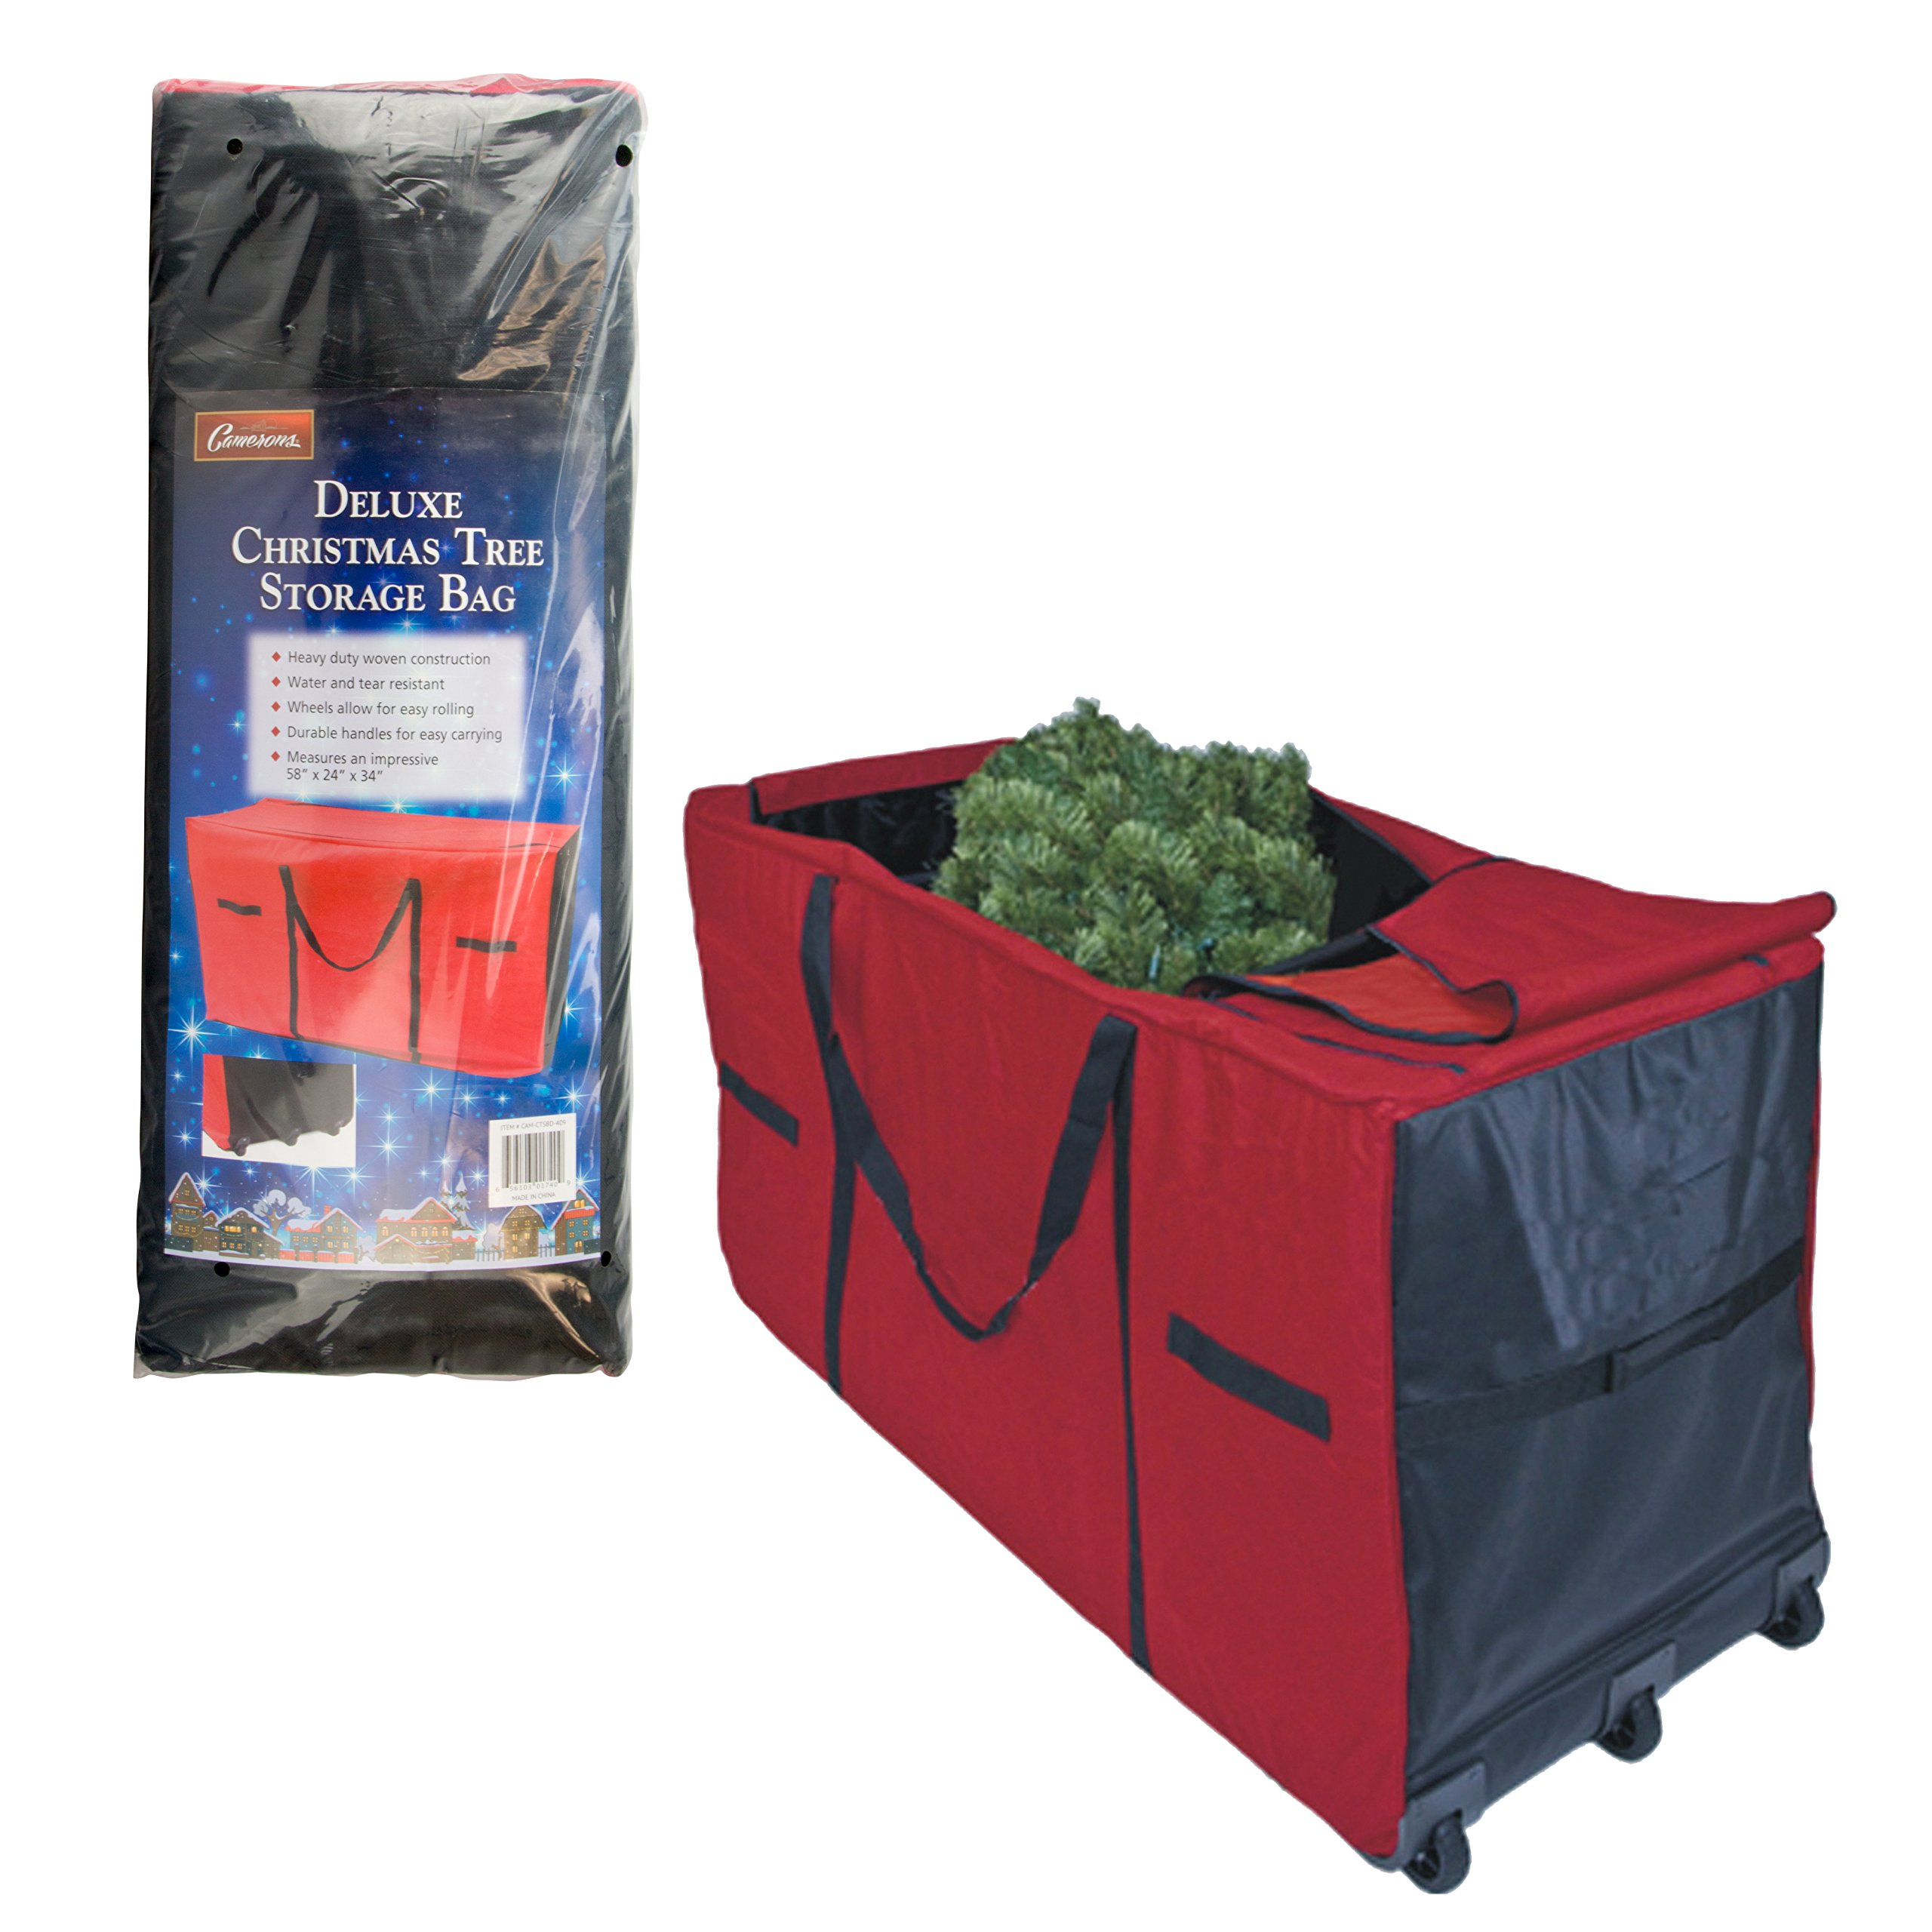 Camerons Products Christmas Tree Storage Bag- Heavy Duty 58''x24''x34'' Storage Container with Wheels by Camerons Products